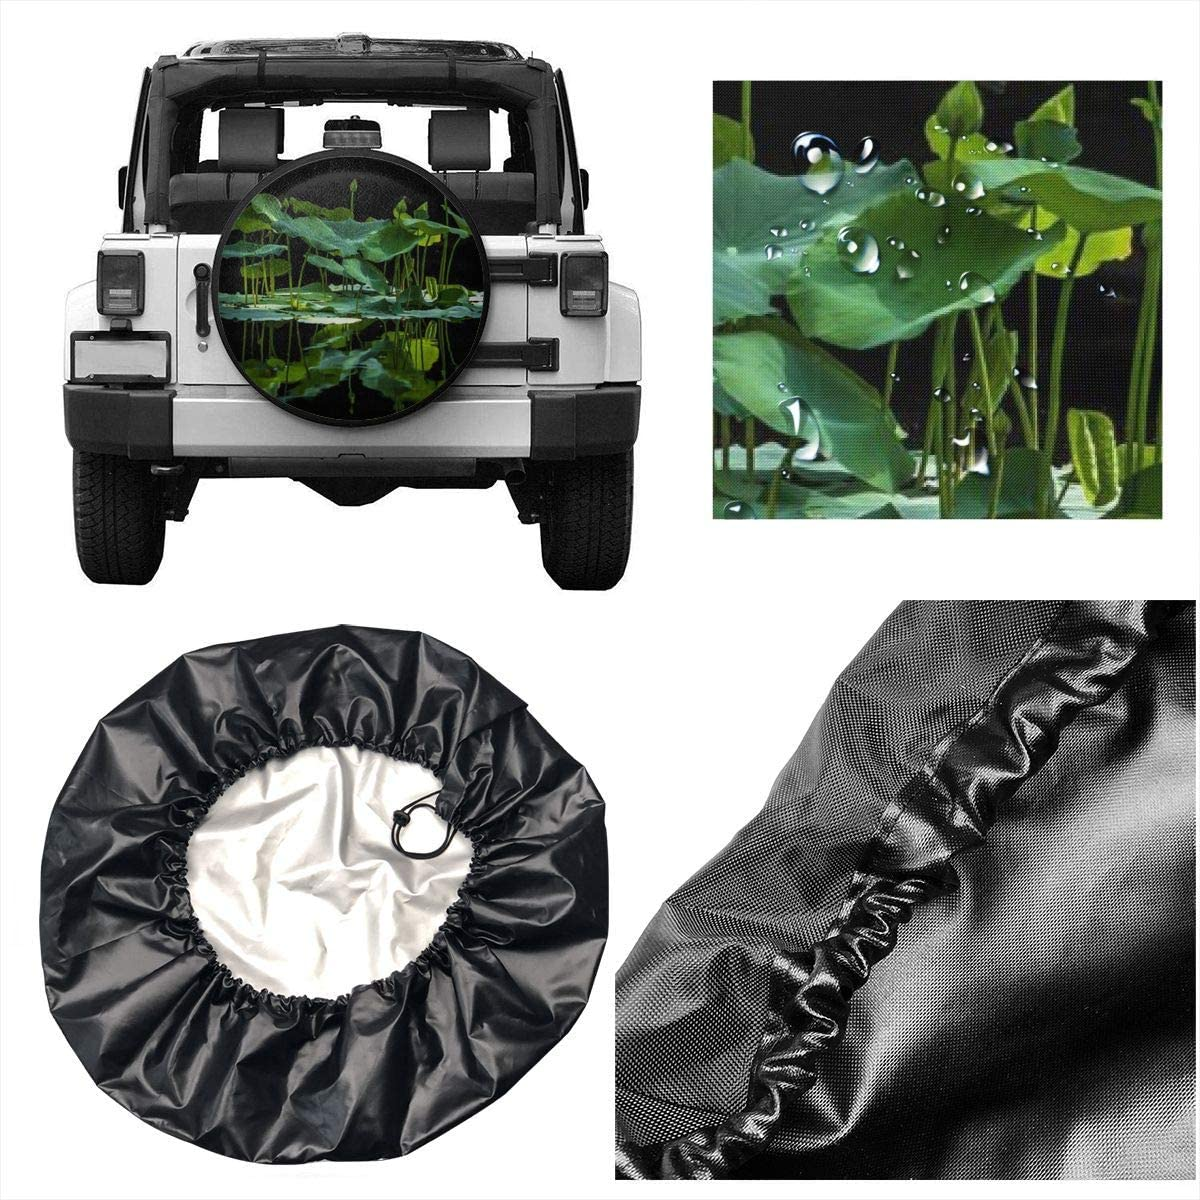 Qklop0 14 15 16 17 18 Universal Lotus Leaf Spare Tire Tyre Cover Wheel Covers for All Cars